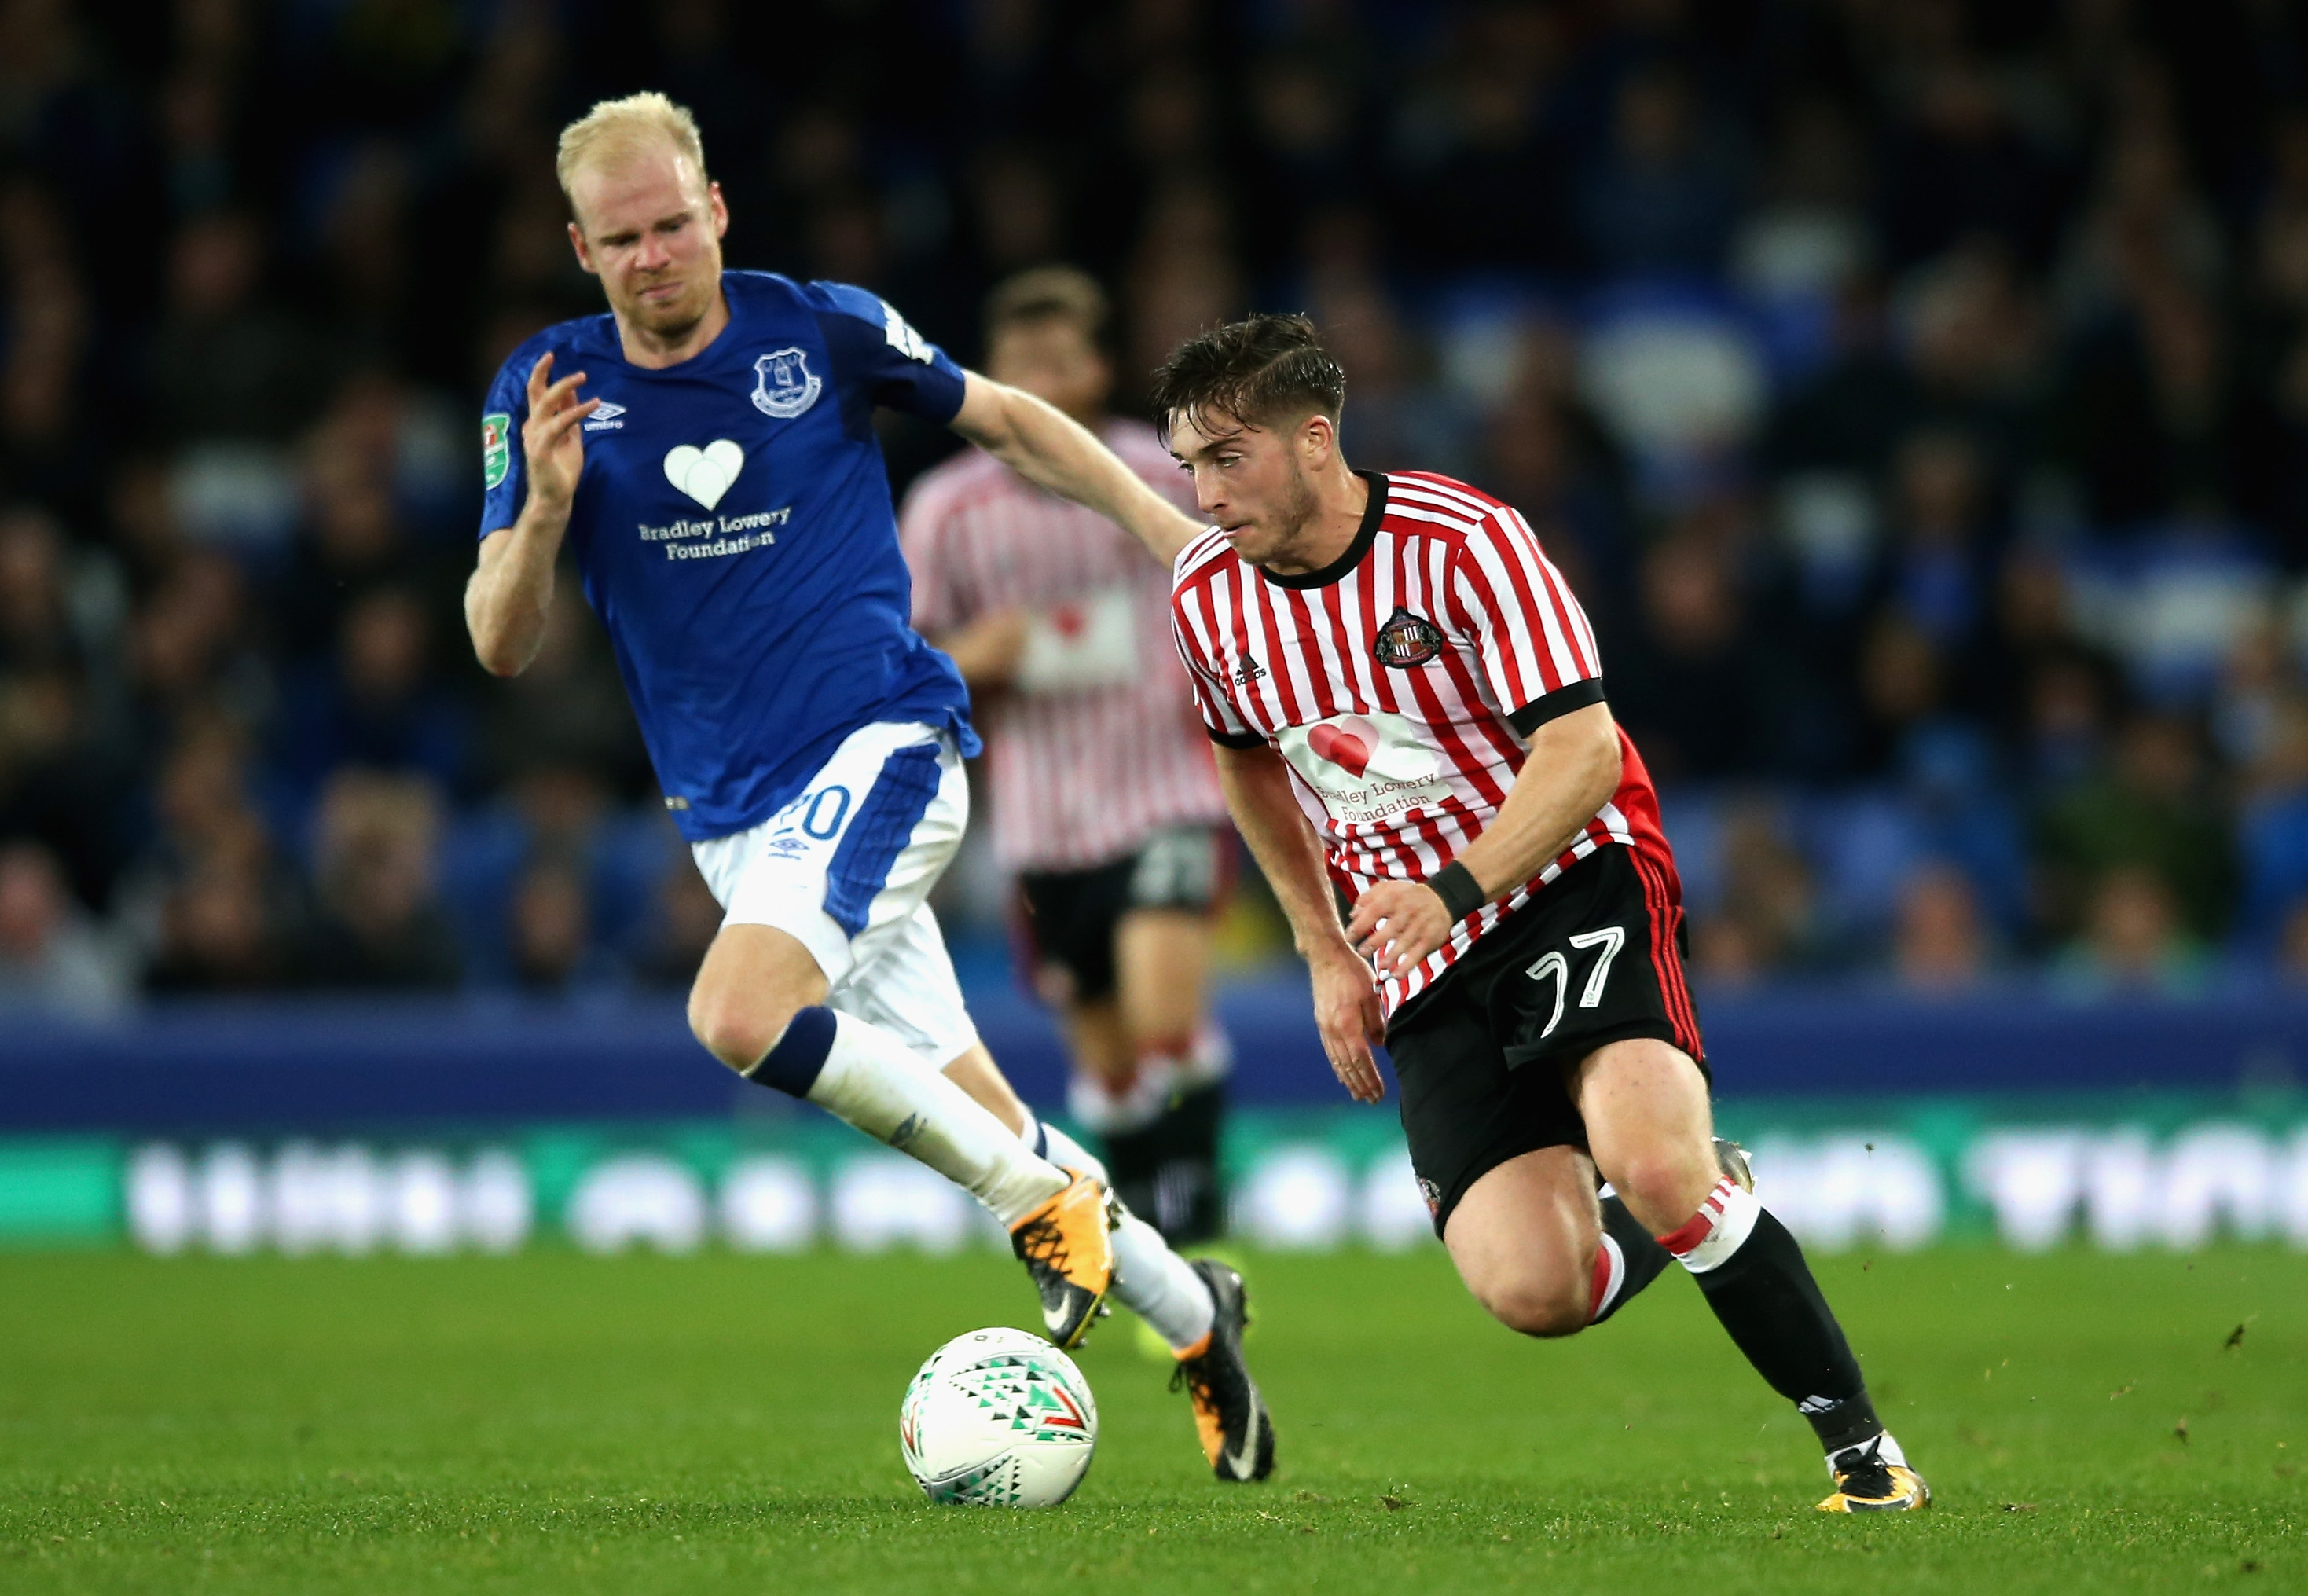 Unsworth issues Everton ultimatum after Southampton defeat